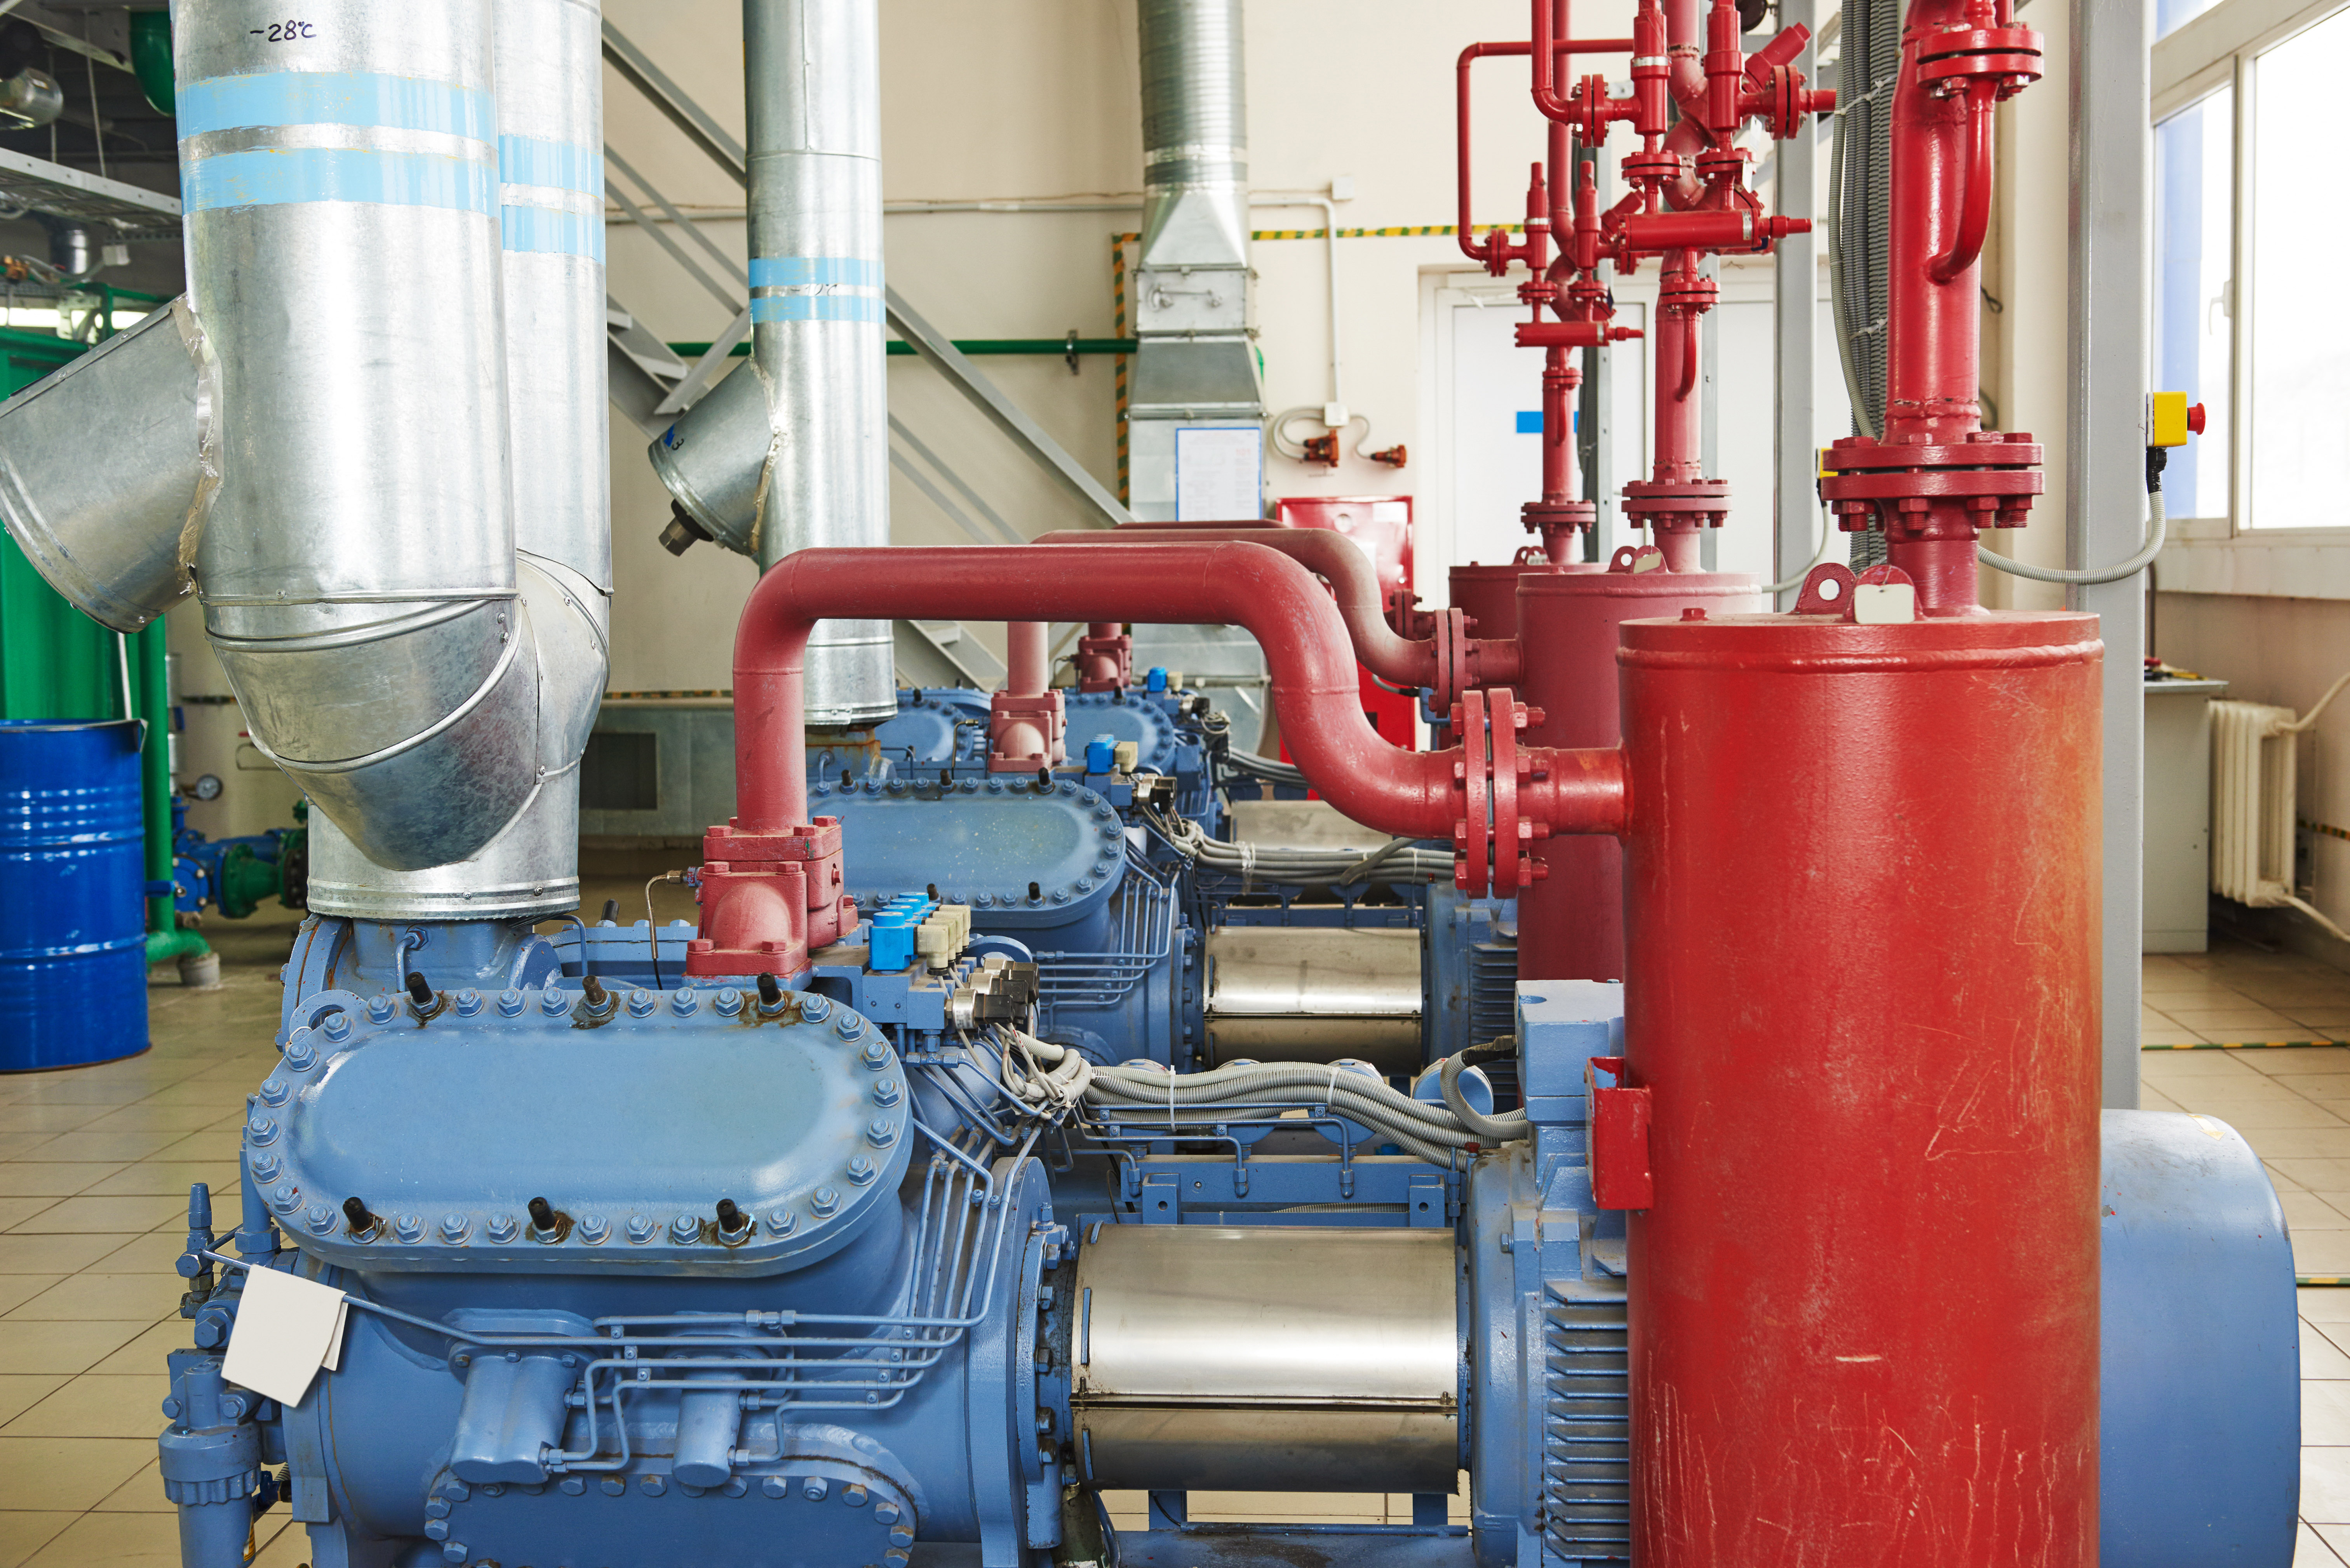 Reliant Gases - Carbon Dioxide for refrigerant systems